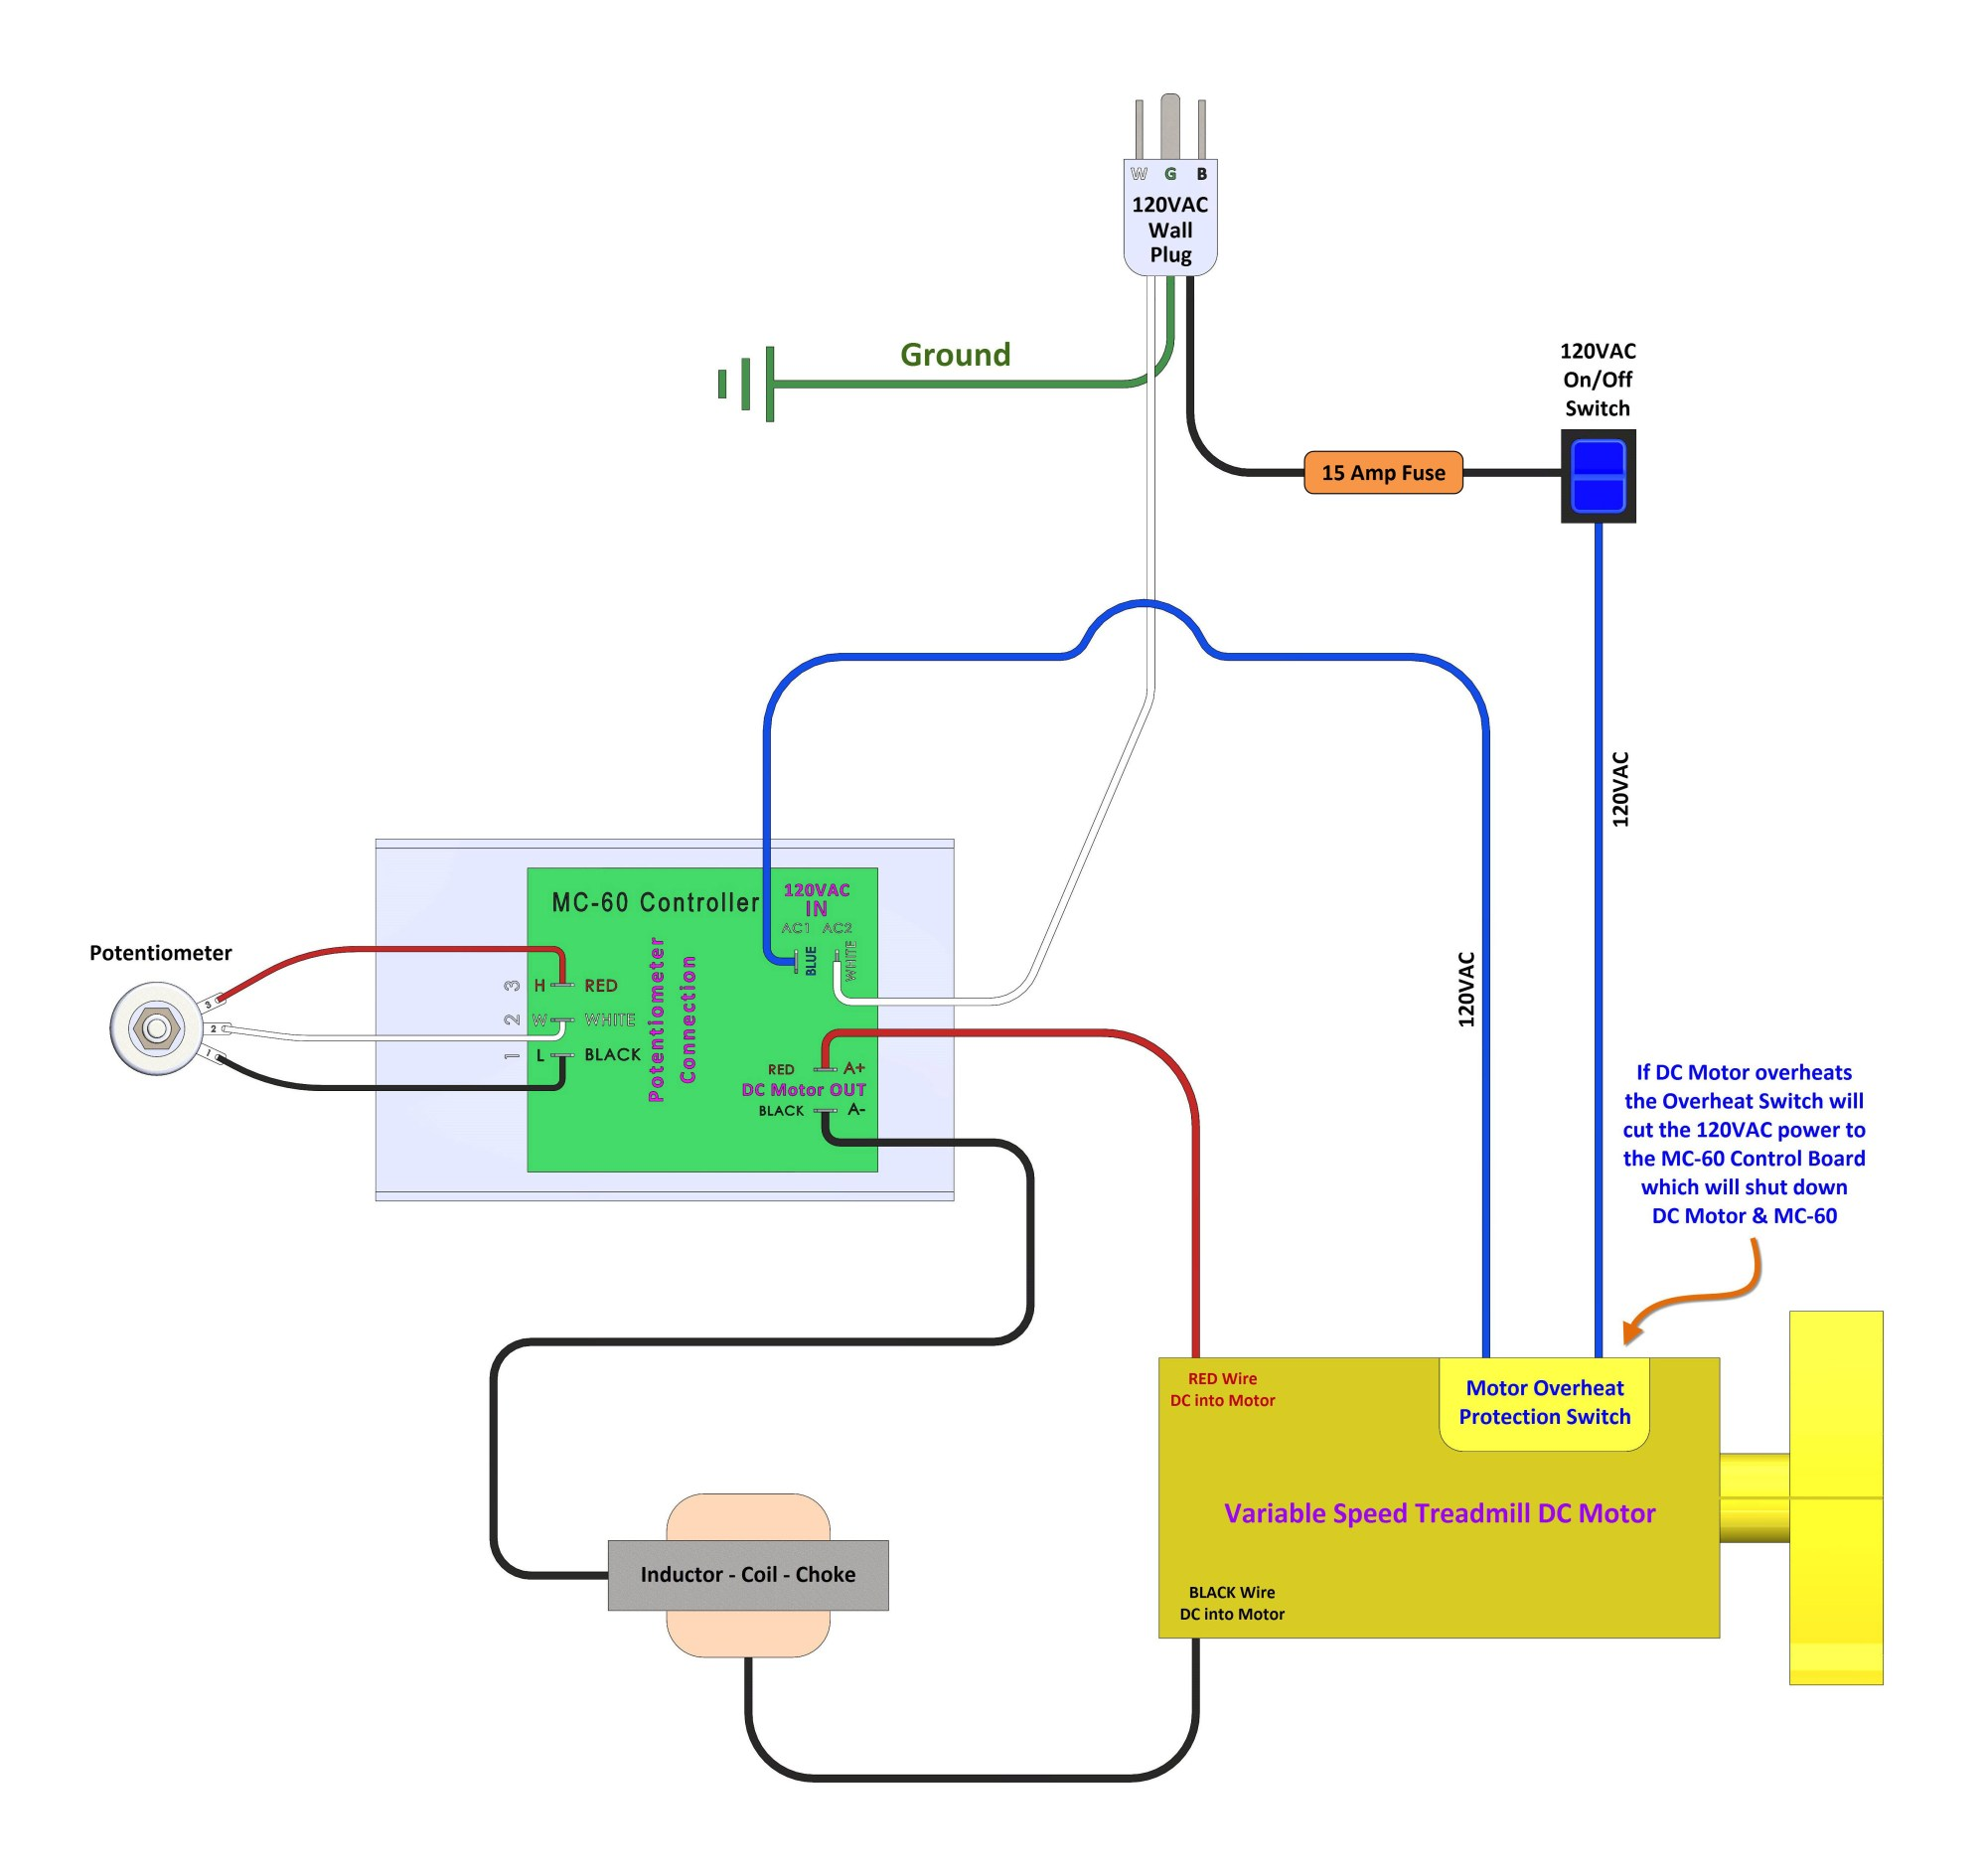 hight resolution of mc 60 control board wiring to run a treadmill variable speed dc motor